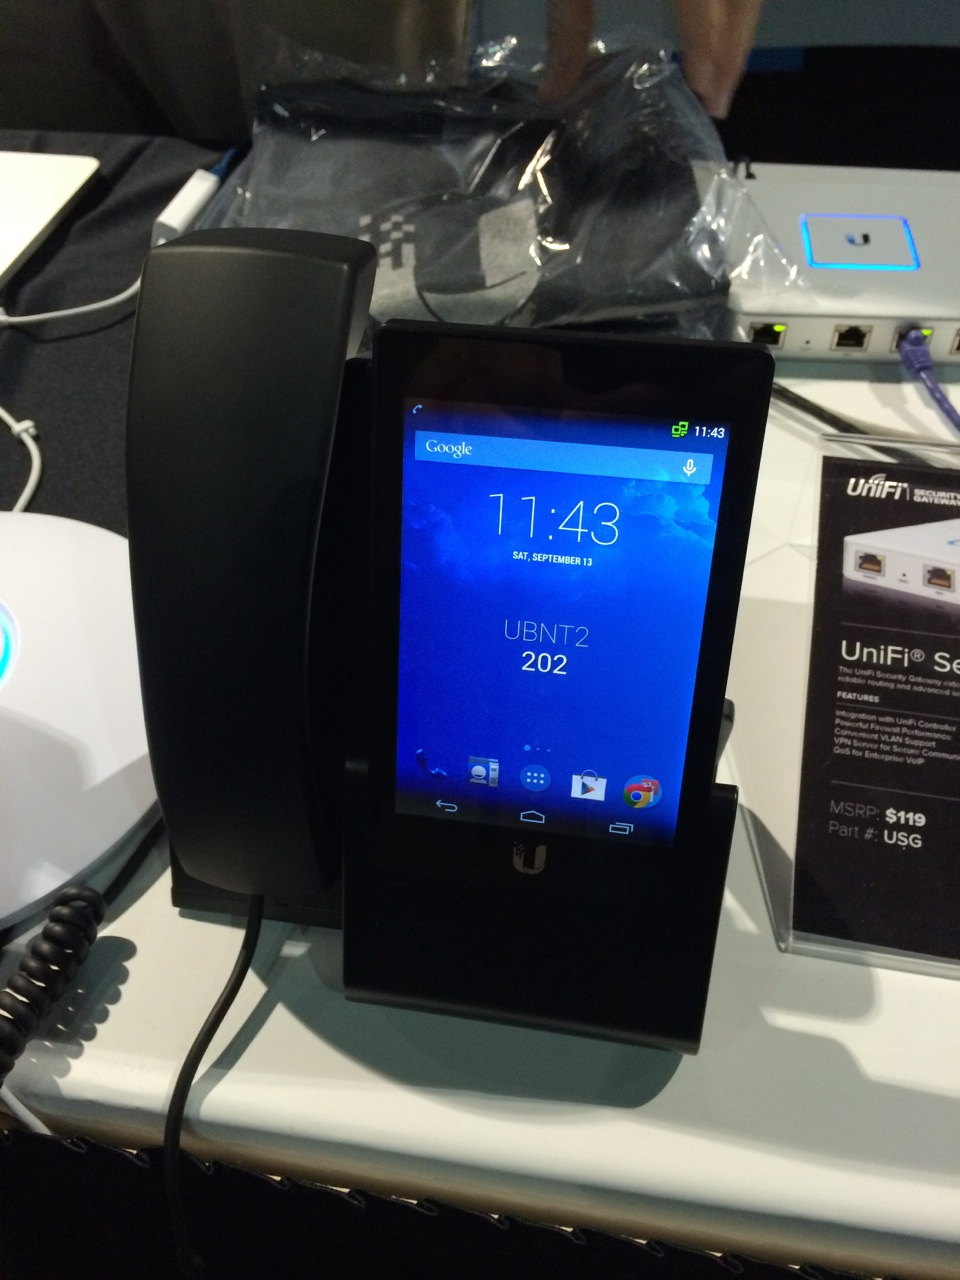 Ubiquity Android desk phone